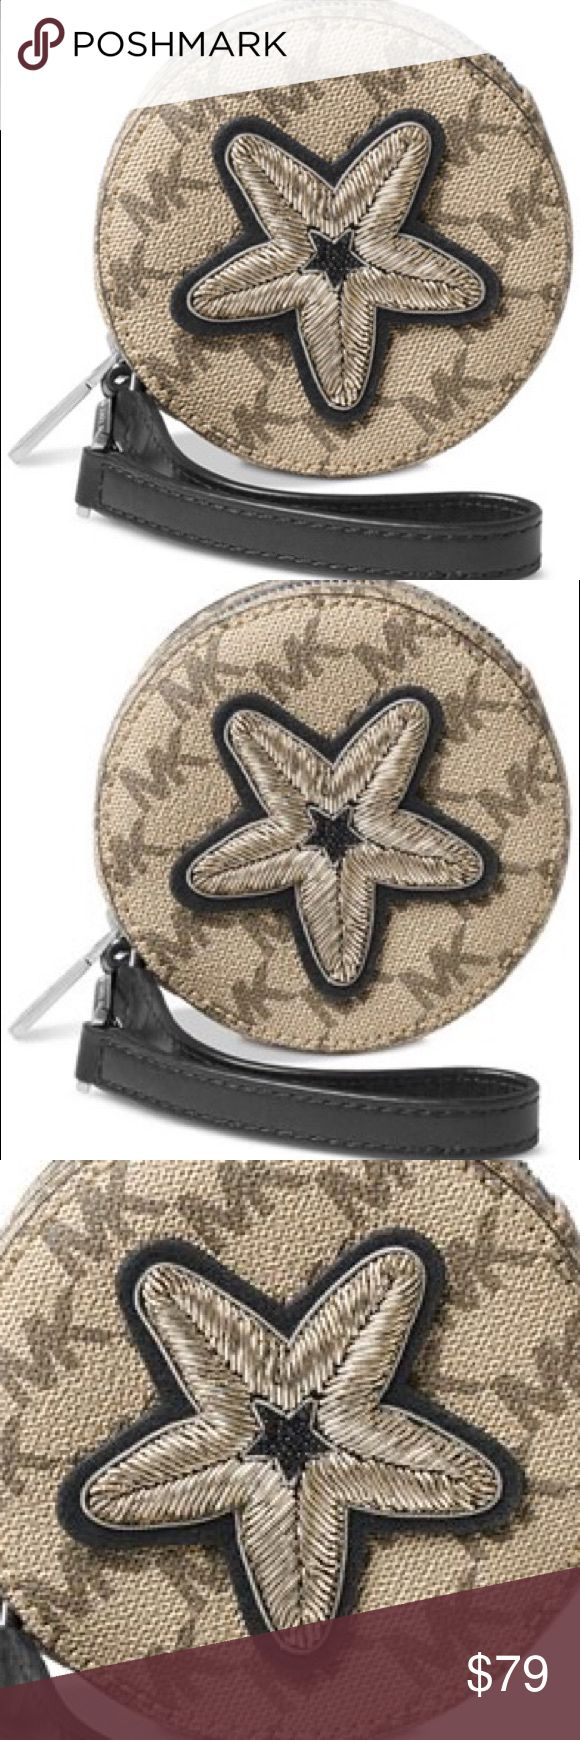 "Michale Kors Star Coin Purse - MSRP $118 Keep your keys, coins and other little treasures together in chic style with MICHAEL Michael Kors' coin purse. •4""W x 4""H x 1/2""D •9-3/4""L strap •Zip closure •Exterior features brushed nickel-tone hardware and star patch Michael Kors Bags Clutches & Wristlets"